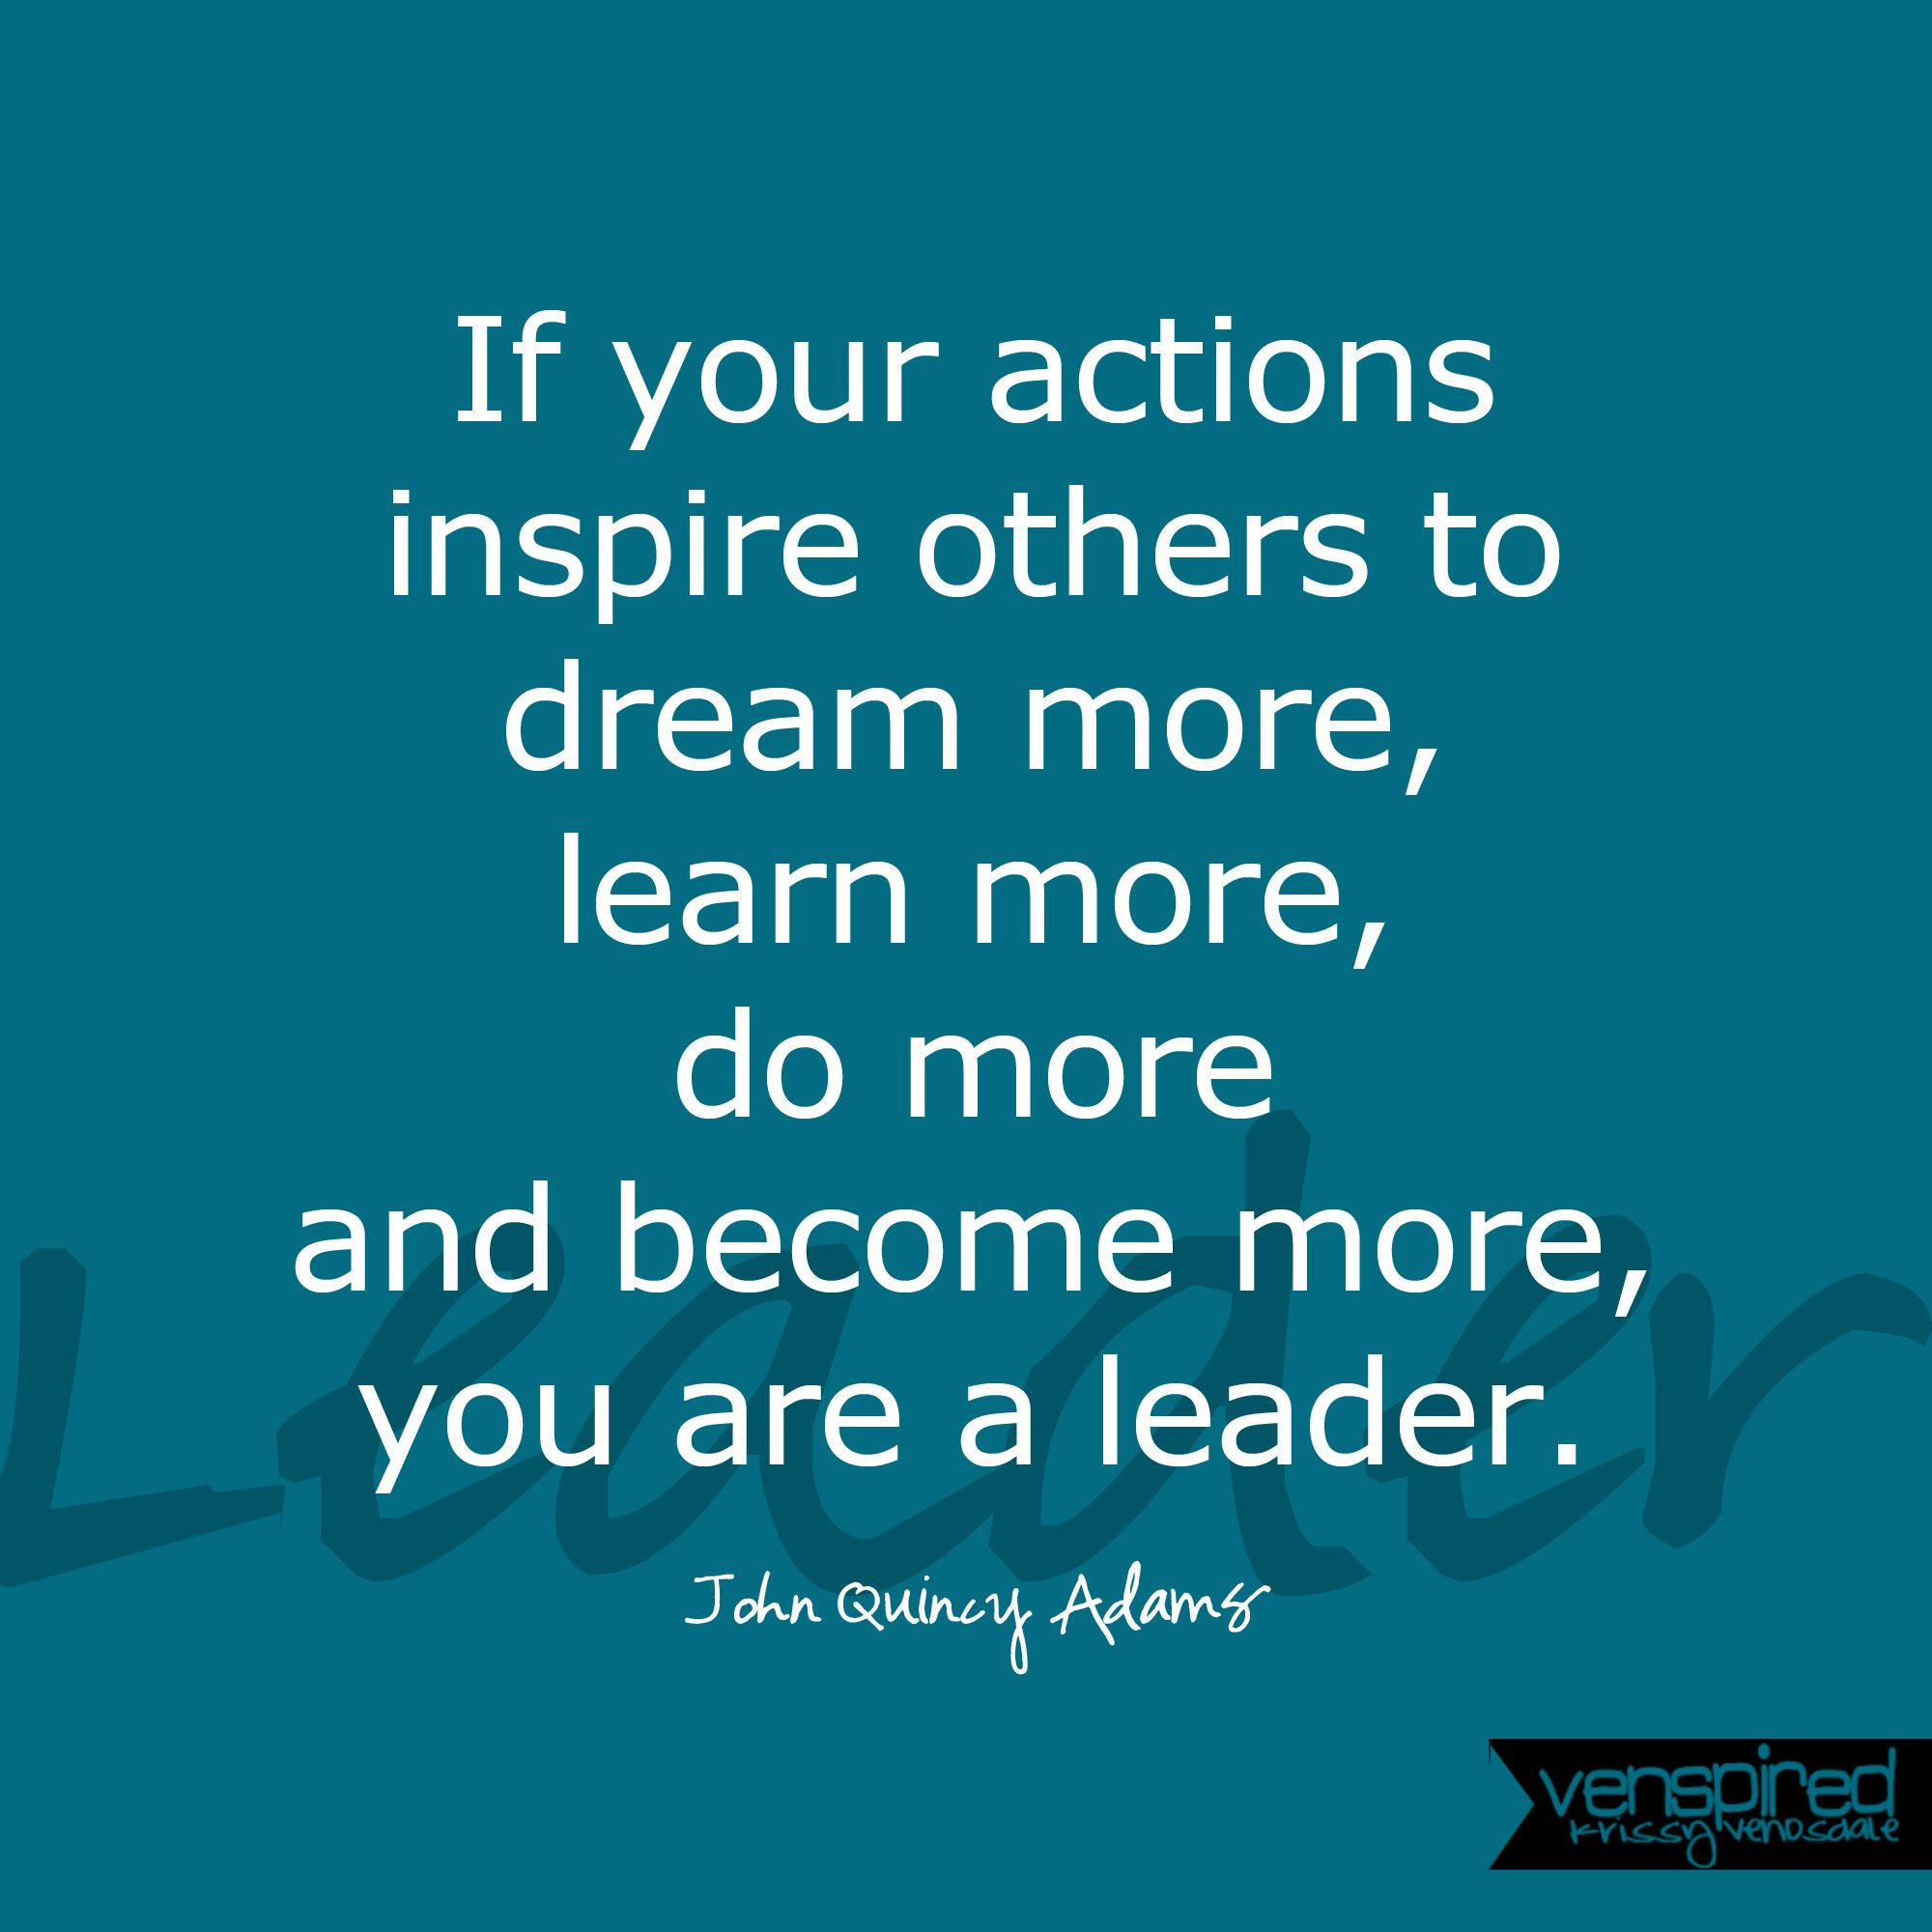 Inspirational Quotes From Leaders: If Your Actions Inspire Others To Dream More, Learn More